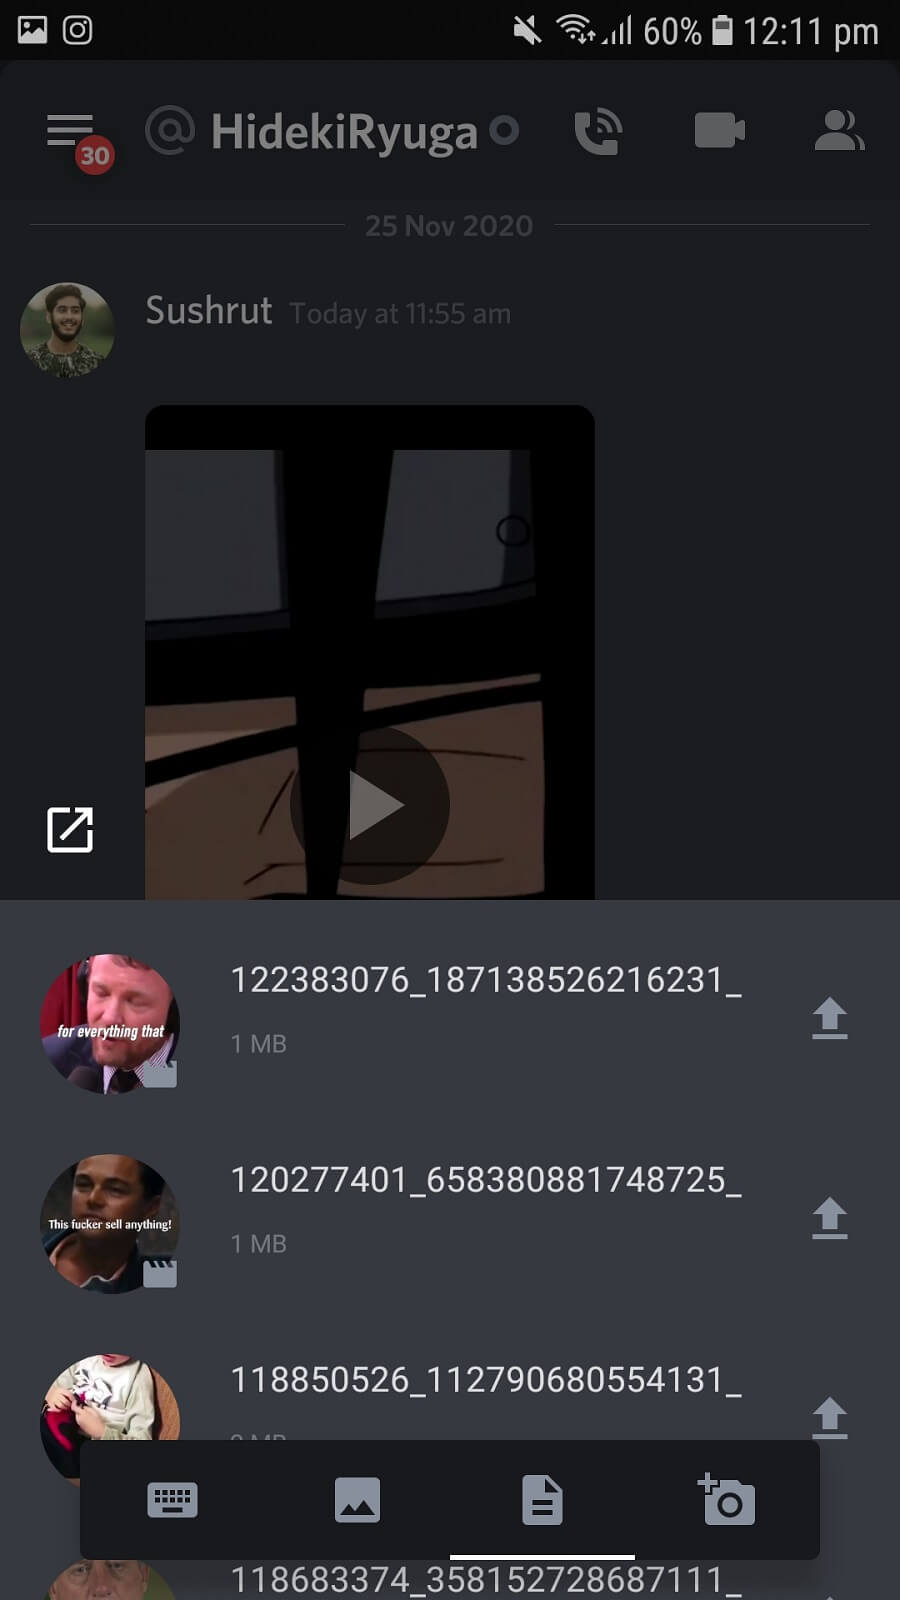 Click on the image icon to upload a pre-recorded video   Download Videos from Discord